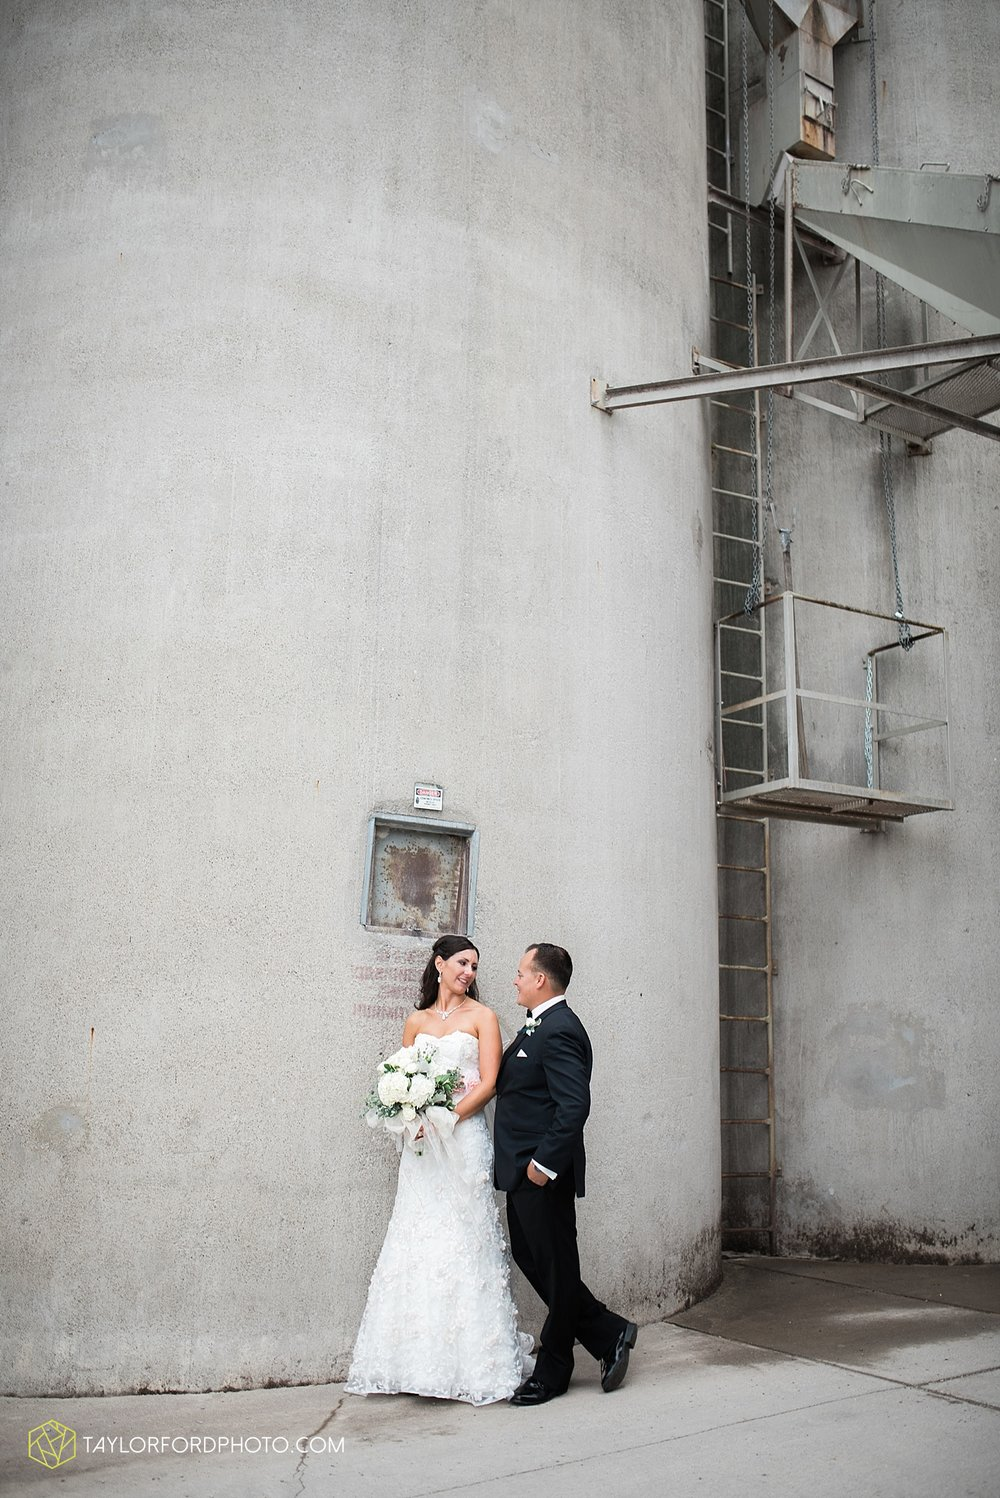 fort_wayne_indiana_wedding_photographer_taylor_ford_dupont_downs_0473.jpg